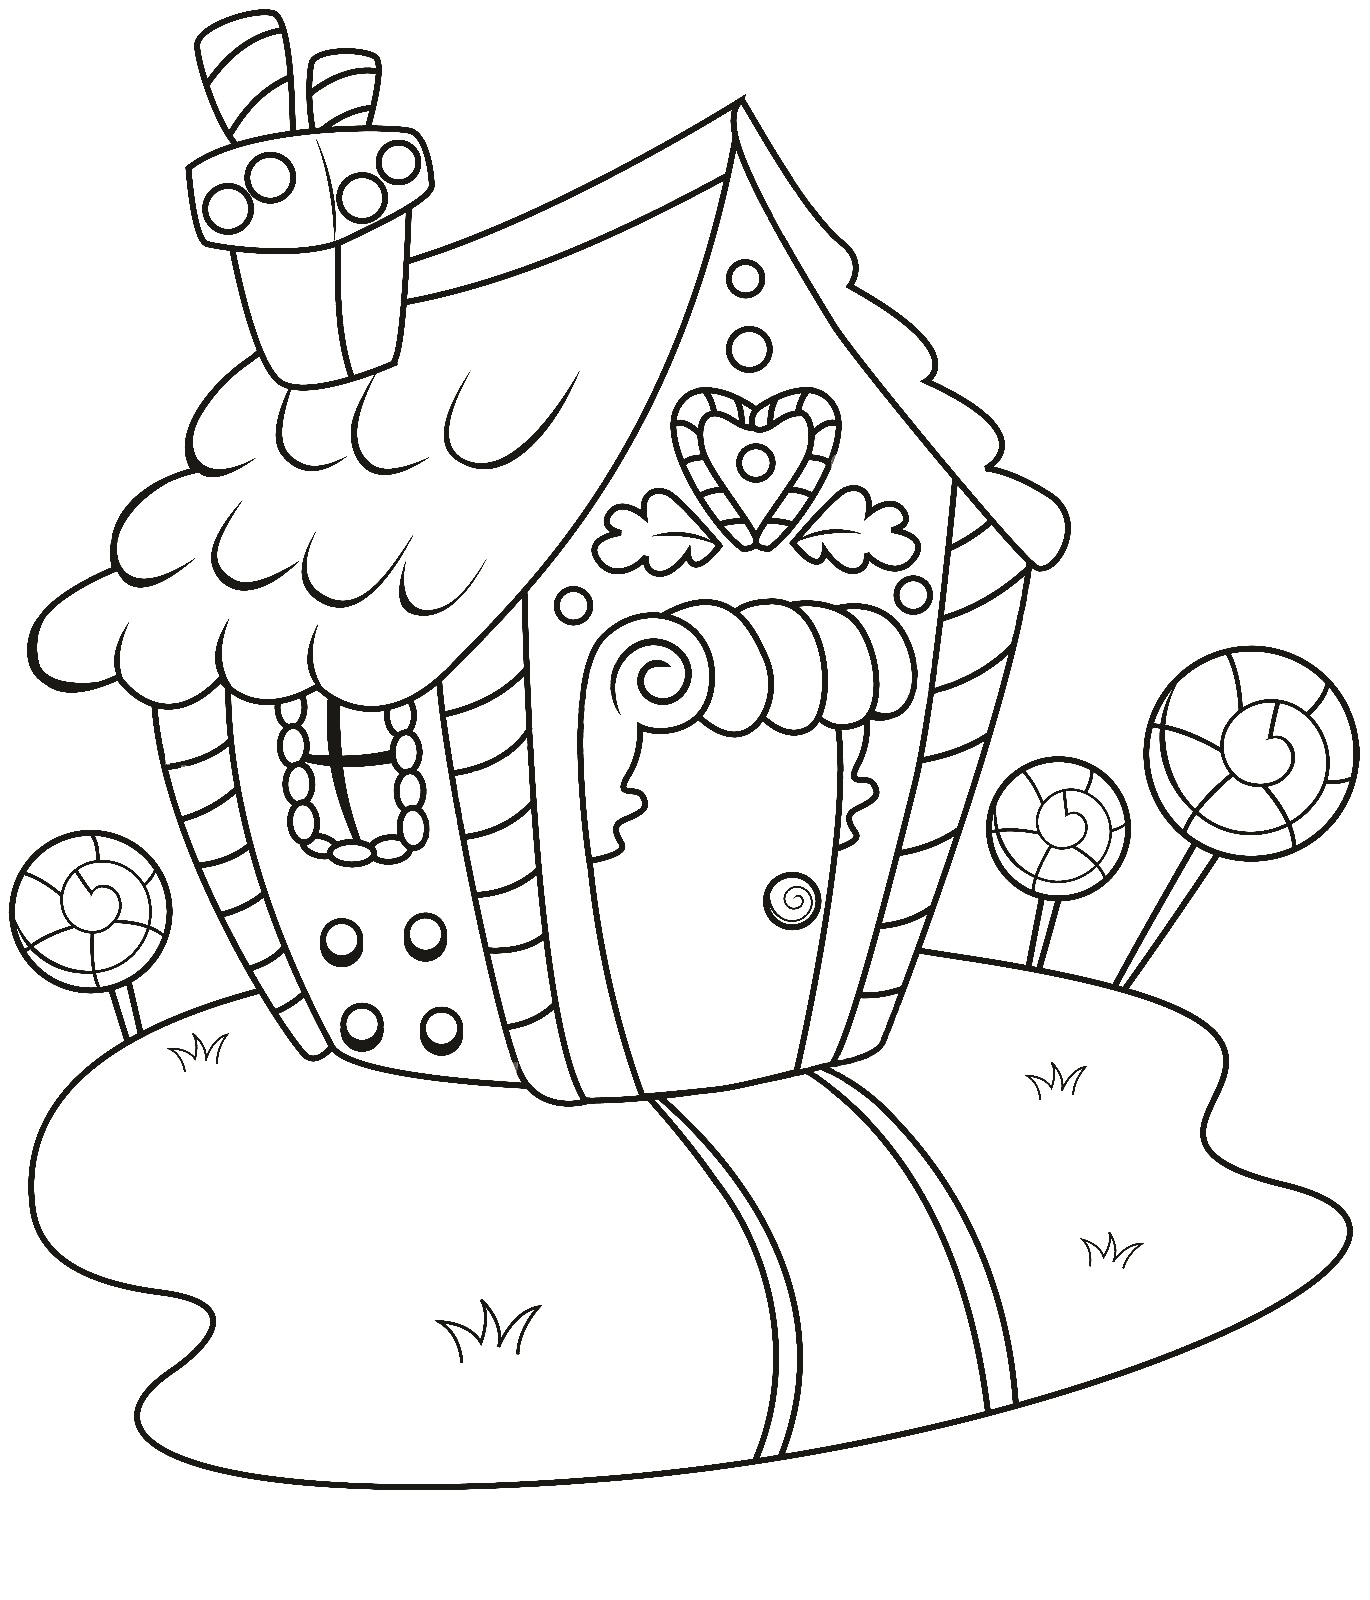 hansel and gretel activities for kids